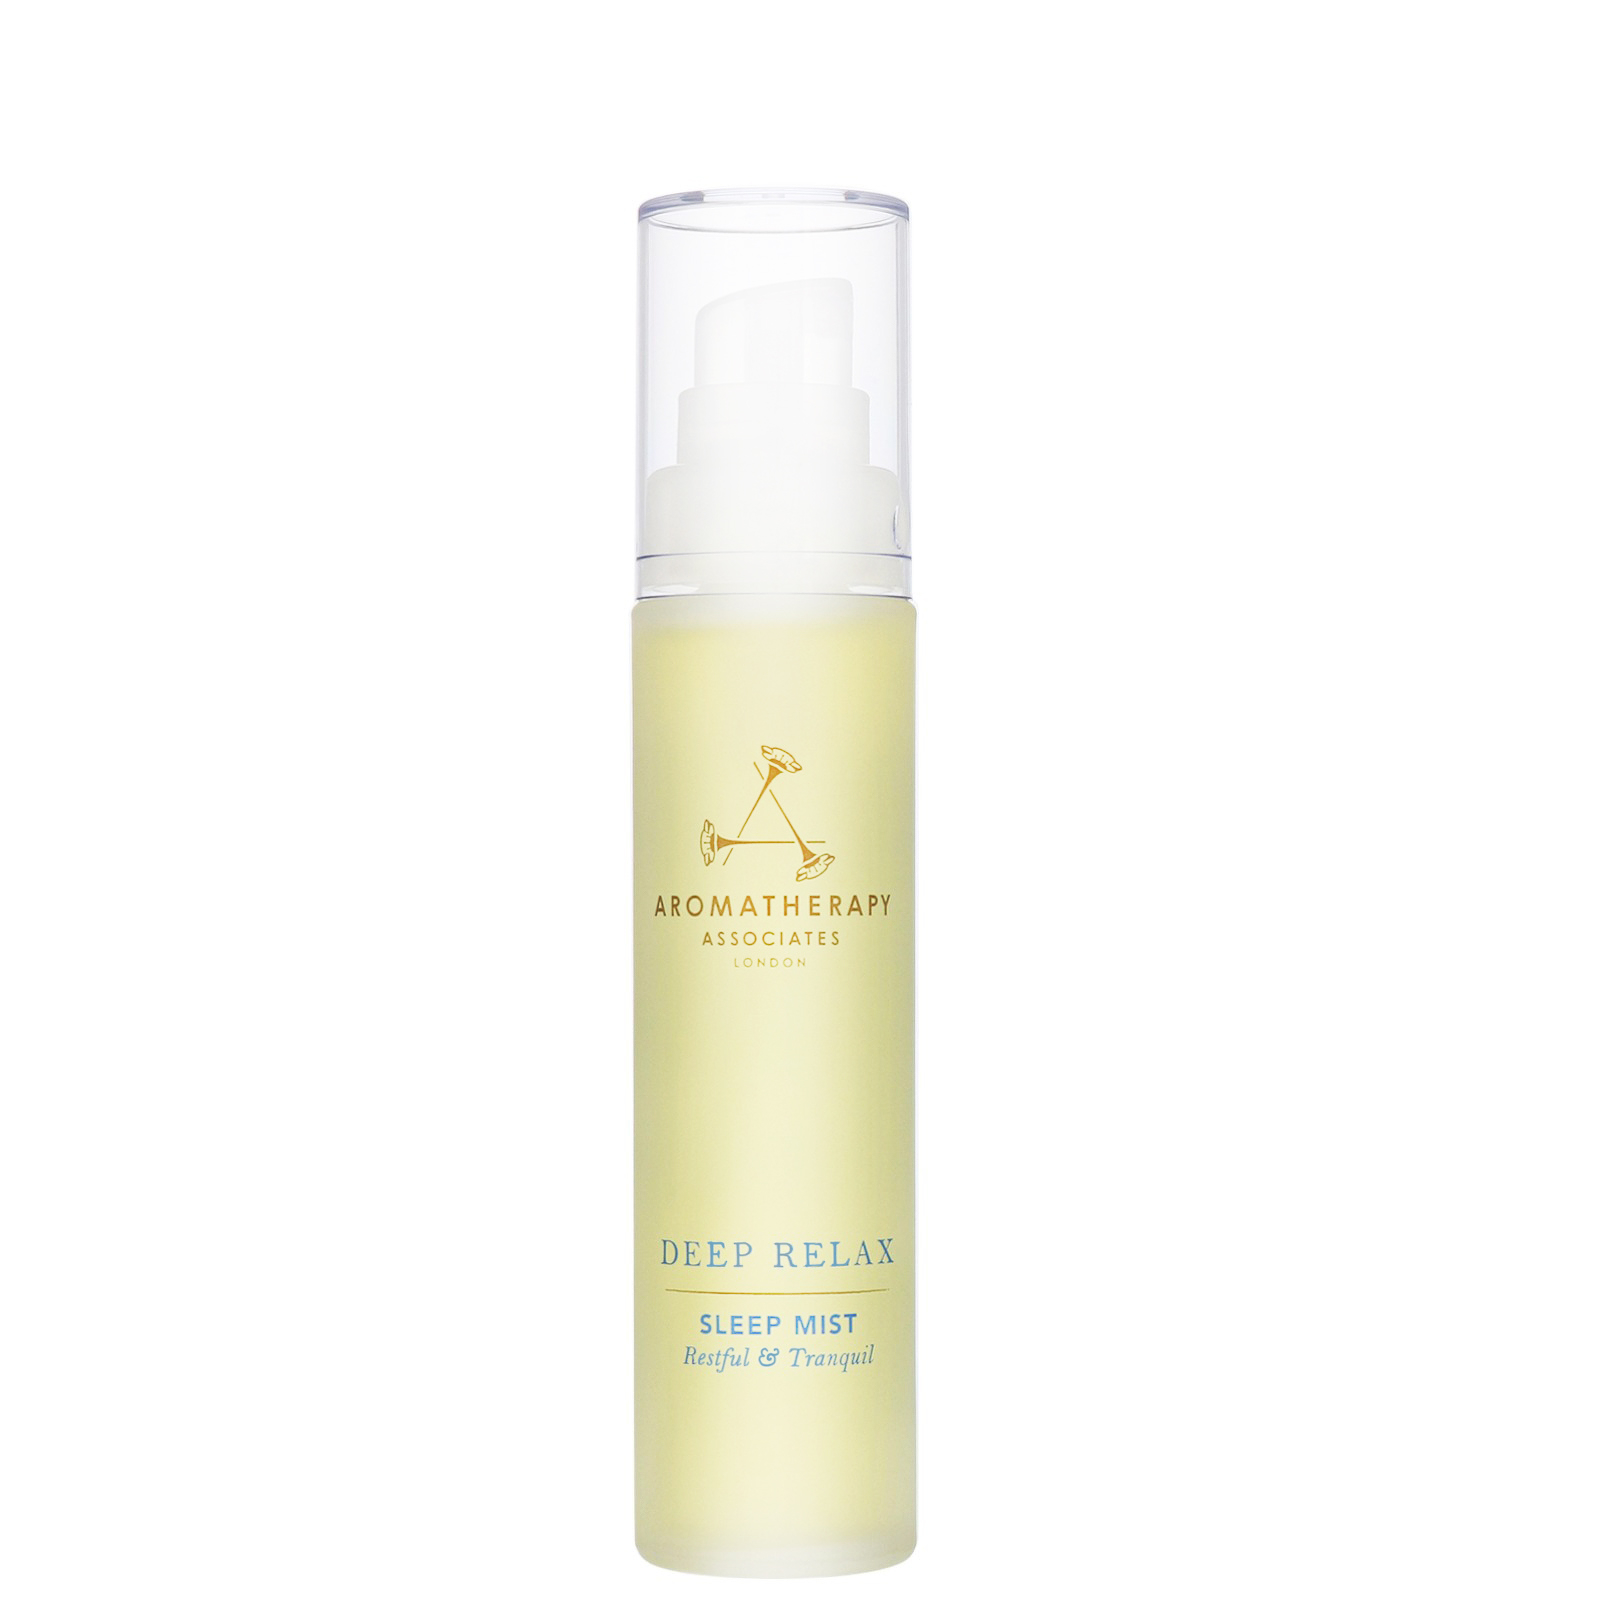 Aromatherapy Associates Bath & Body Deep Relax Sleep Mist 50ml